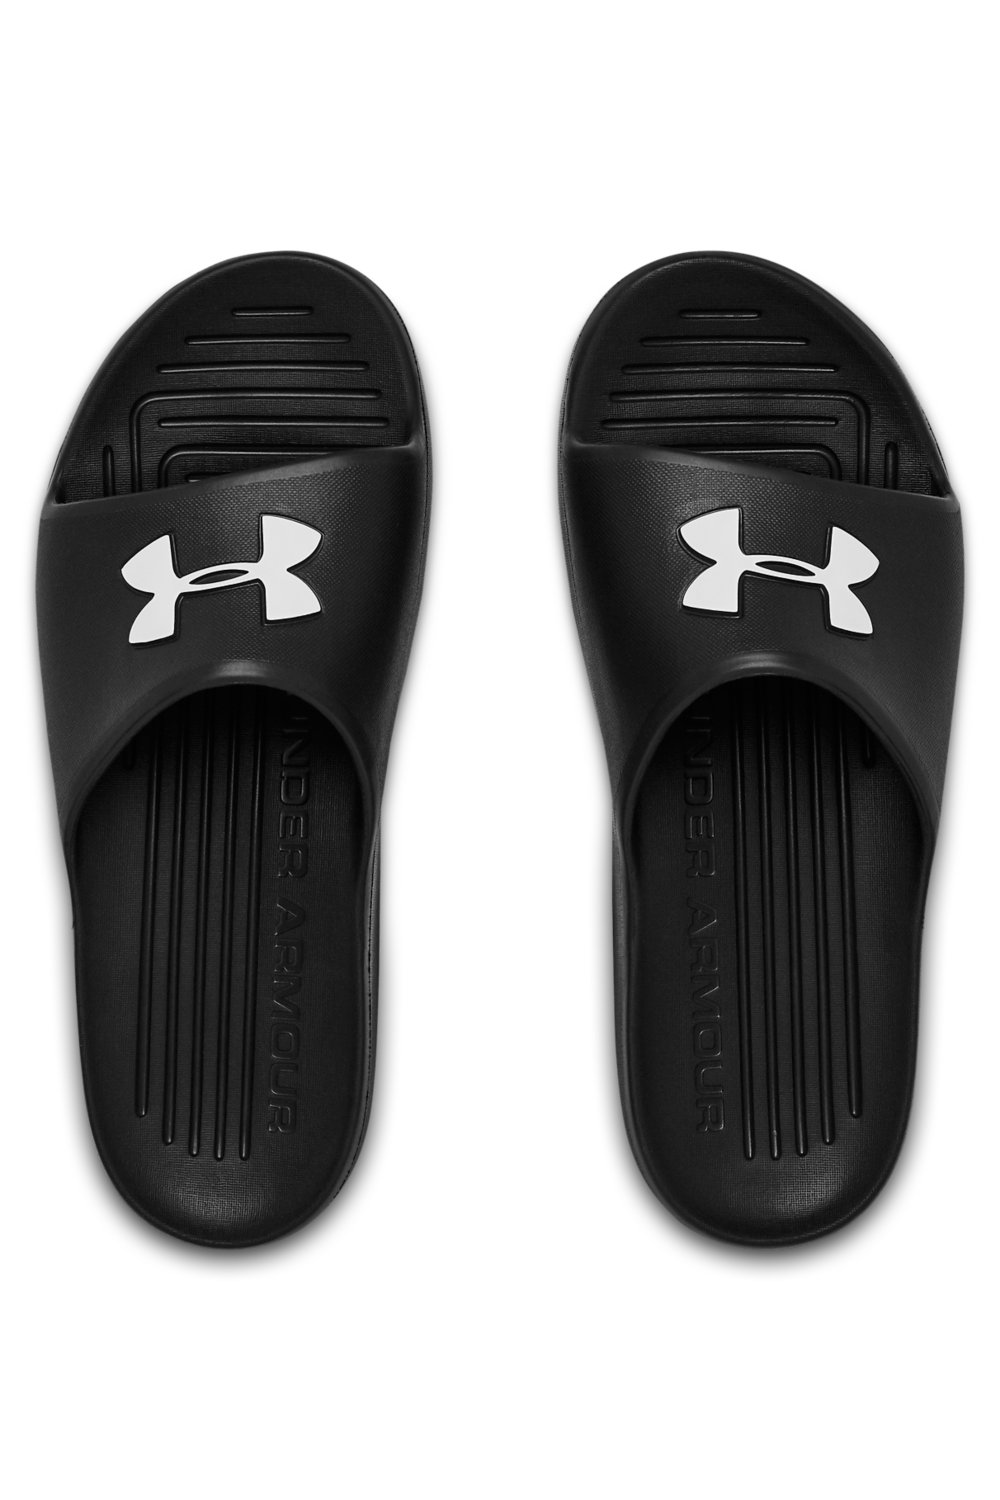 Under Armour černé unisex pantofle Core Pth Slide